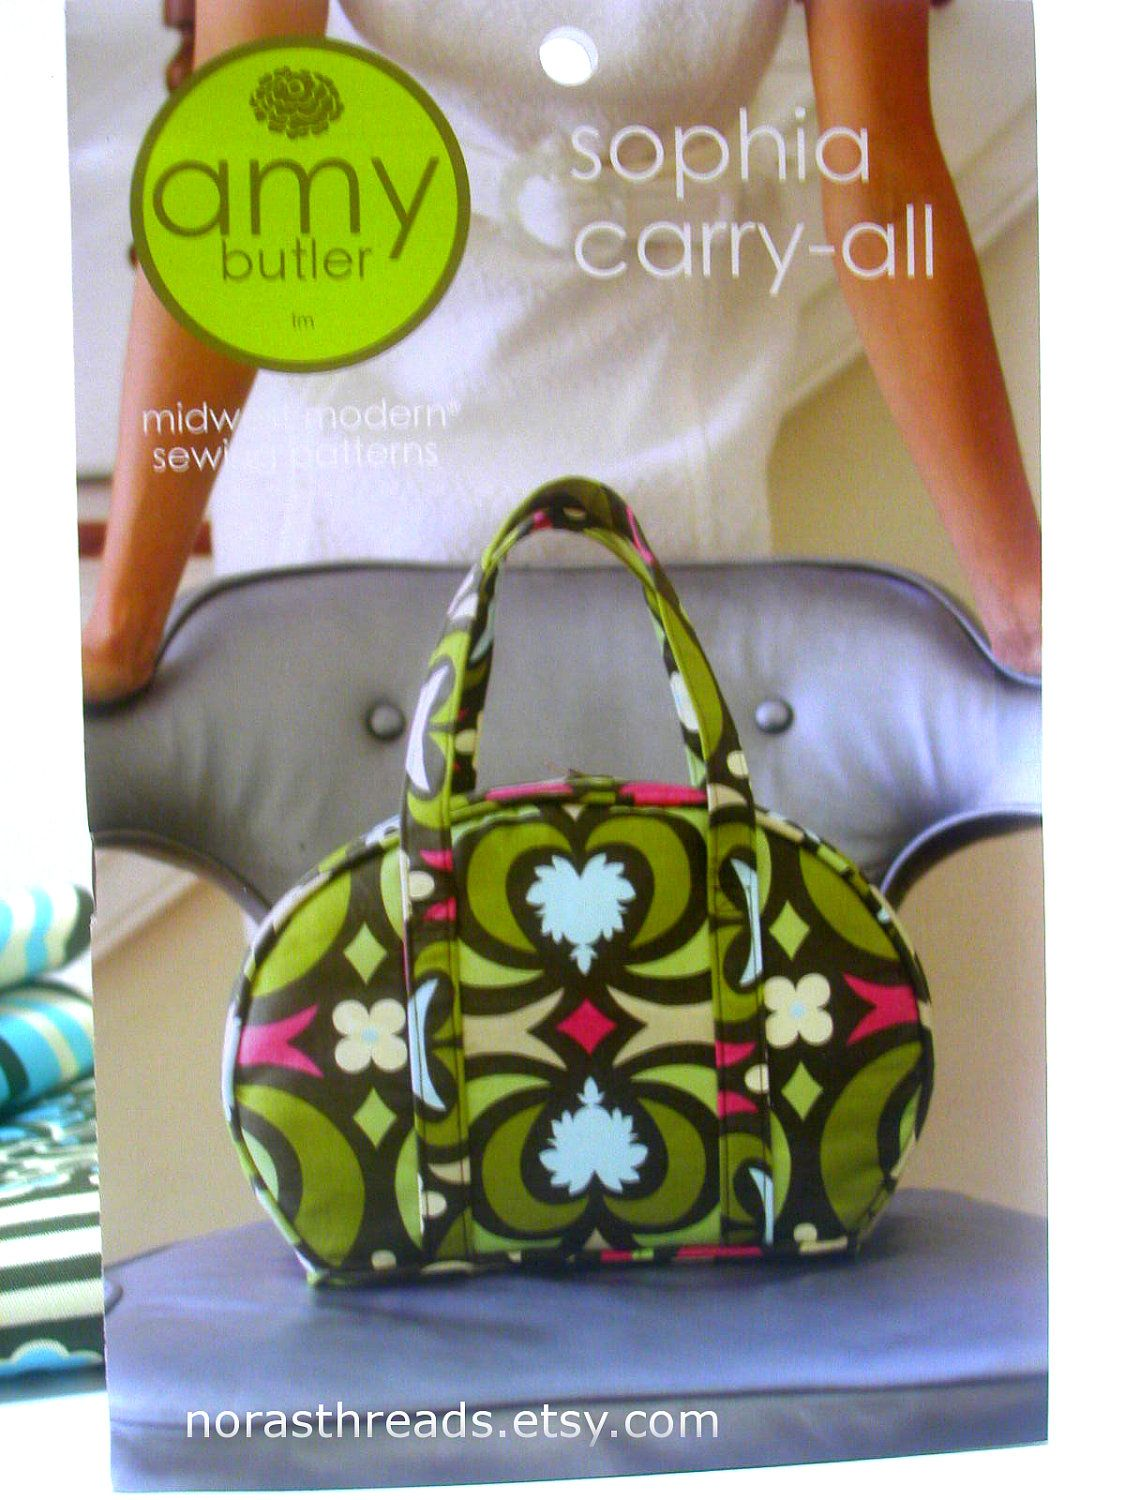 Amy Butler Sophia Carry-All Bag Pattern